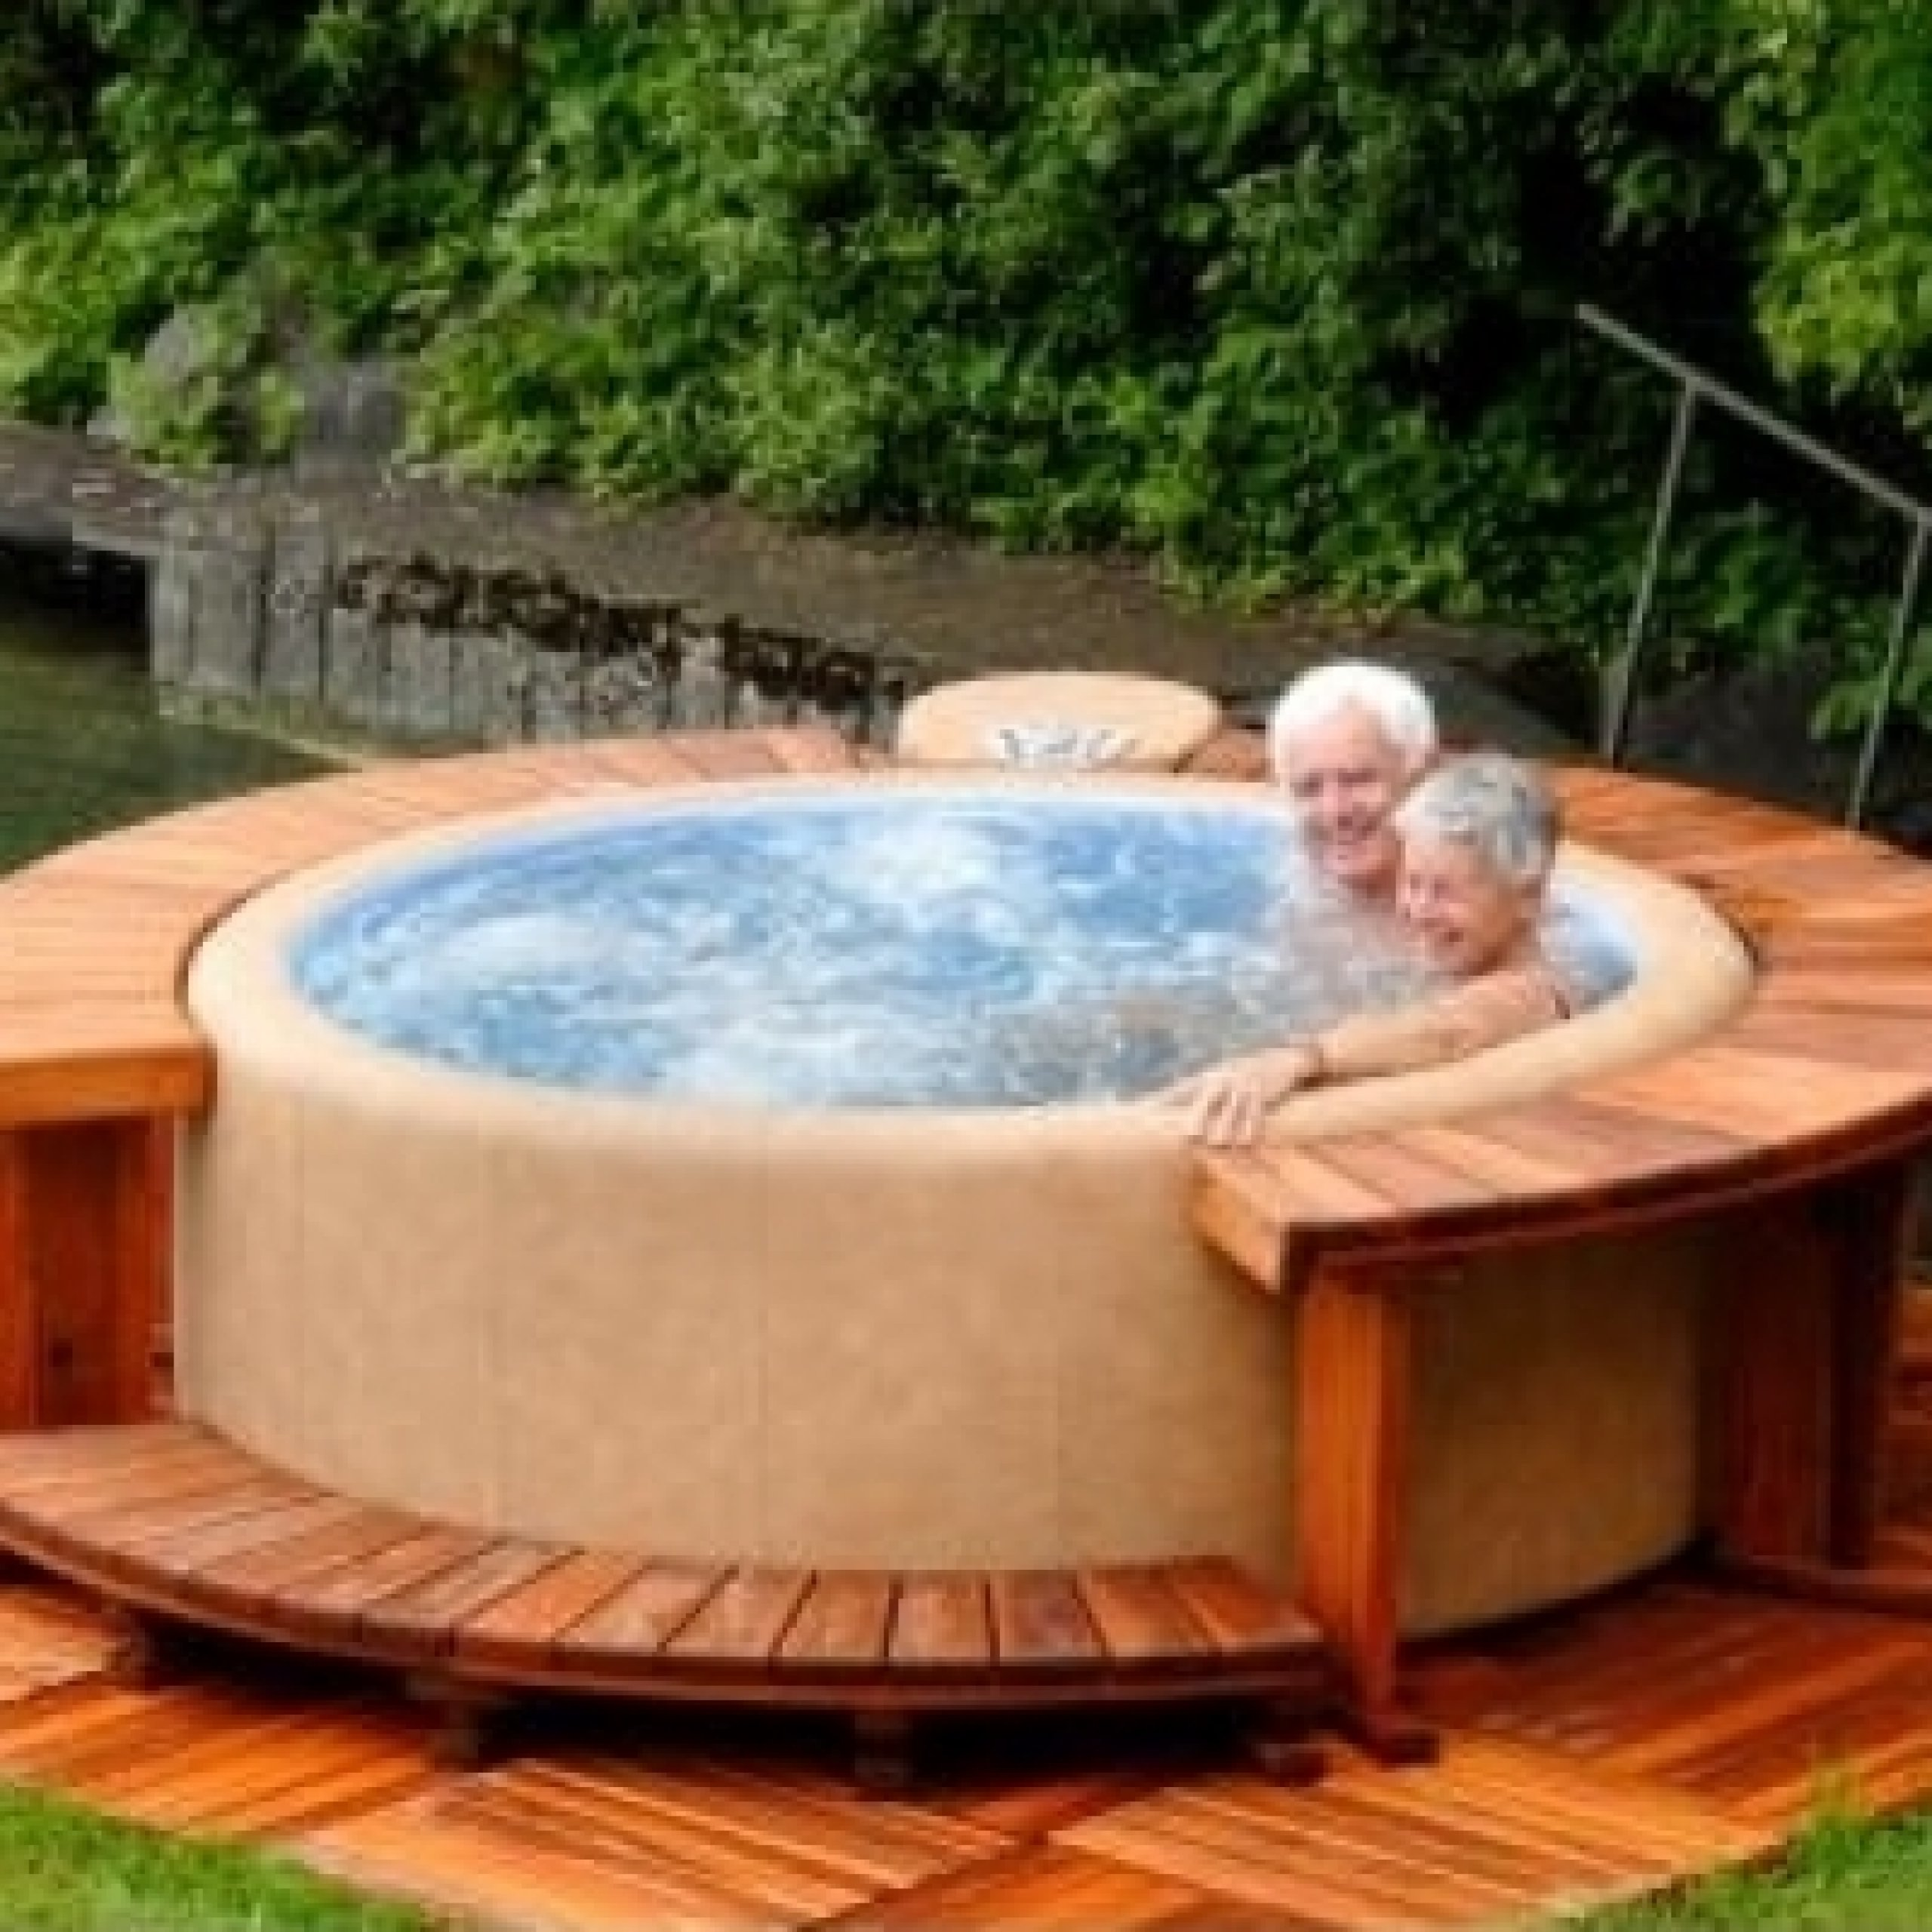 Softub Whirlpool Modell Legend 220 3 4 Personen Camel Pearl: Amazon.de:  Bücher